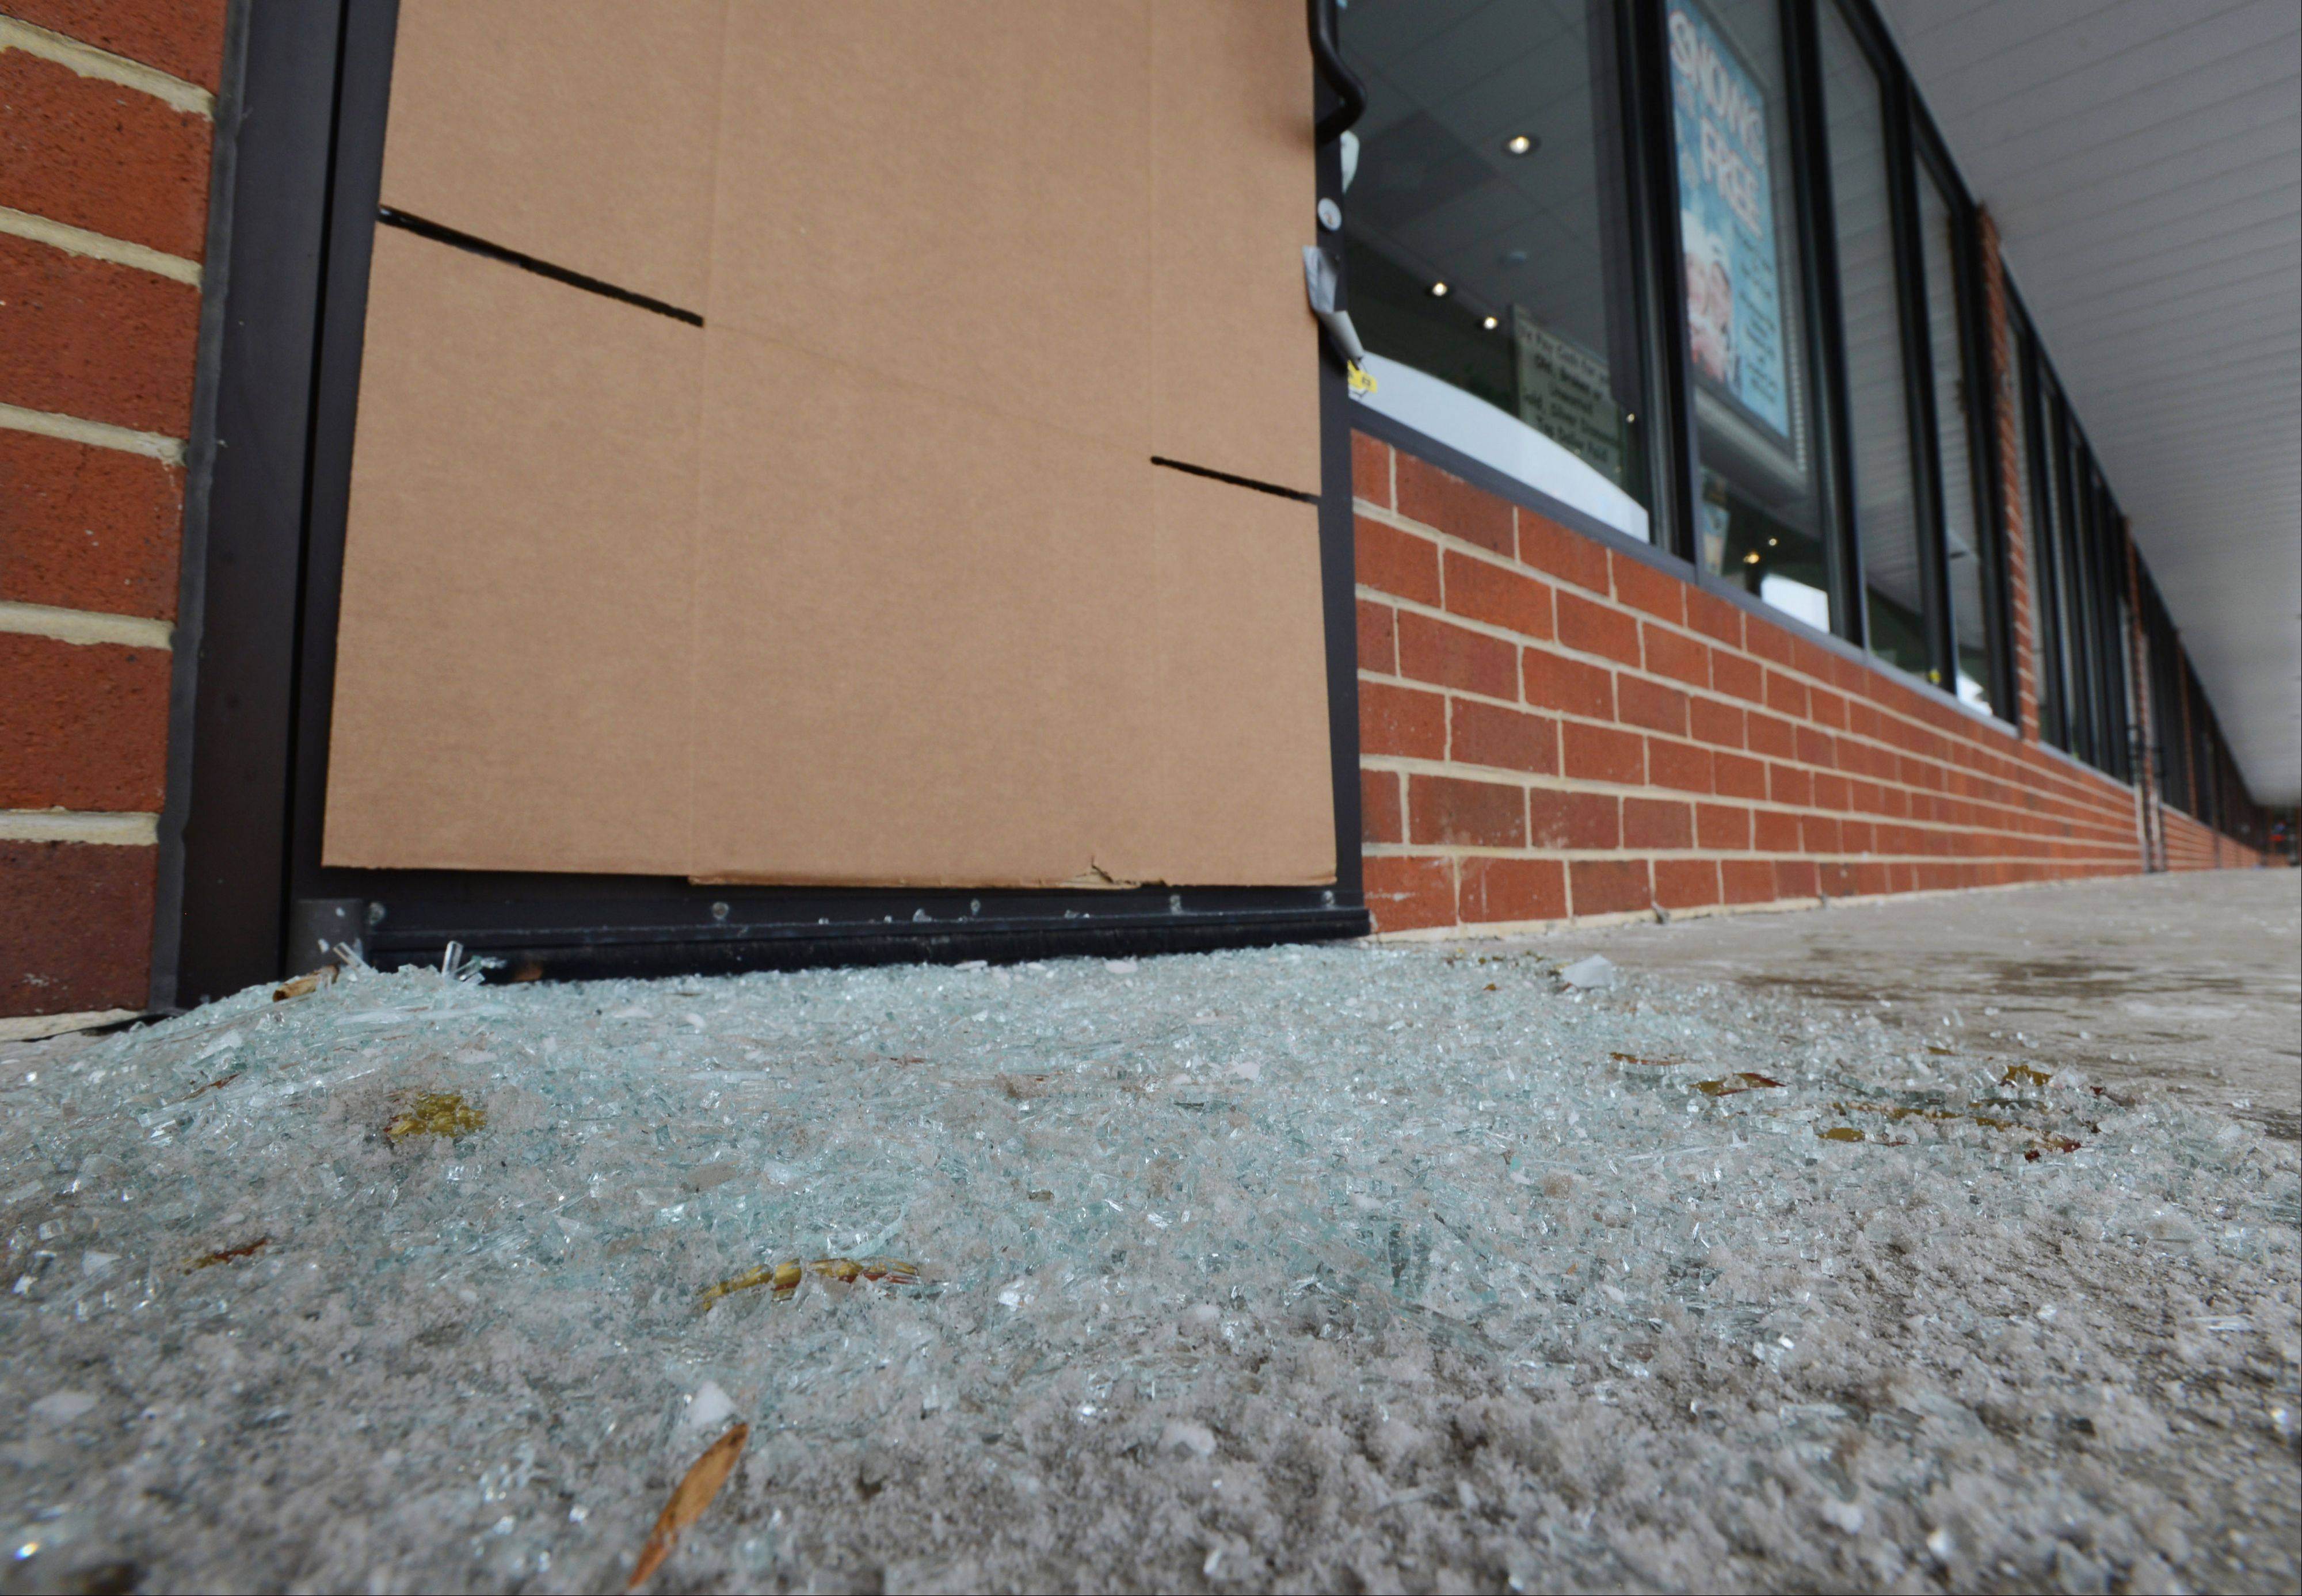 A pile of broken glass remains outside the main entrance to P.K. Bennett Jewelers in Mundelein Tuesday morning after burglars smashed the front door and several display cases before stealing merchandise inside the store. The store made headlines in recent days because of a New Year�s Day snow promotion.